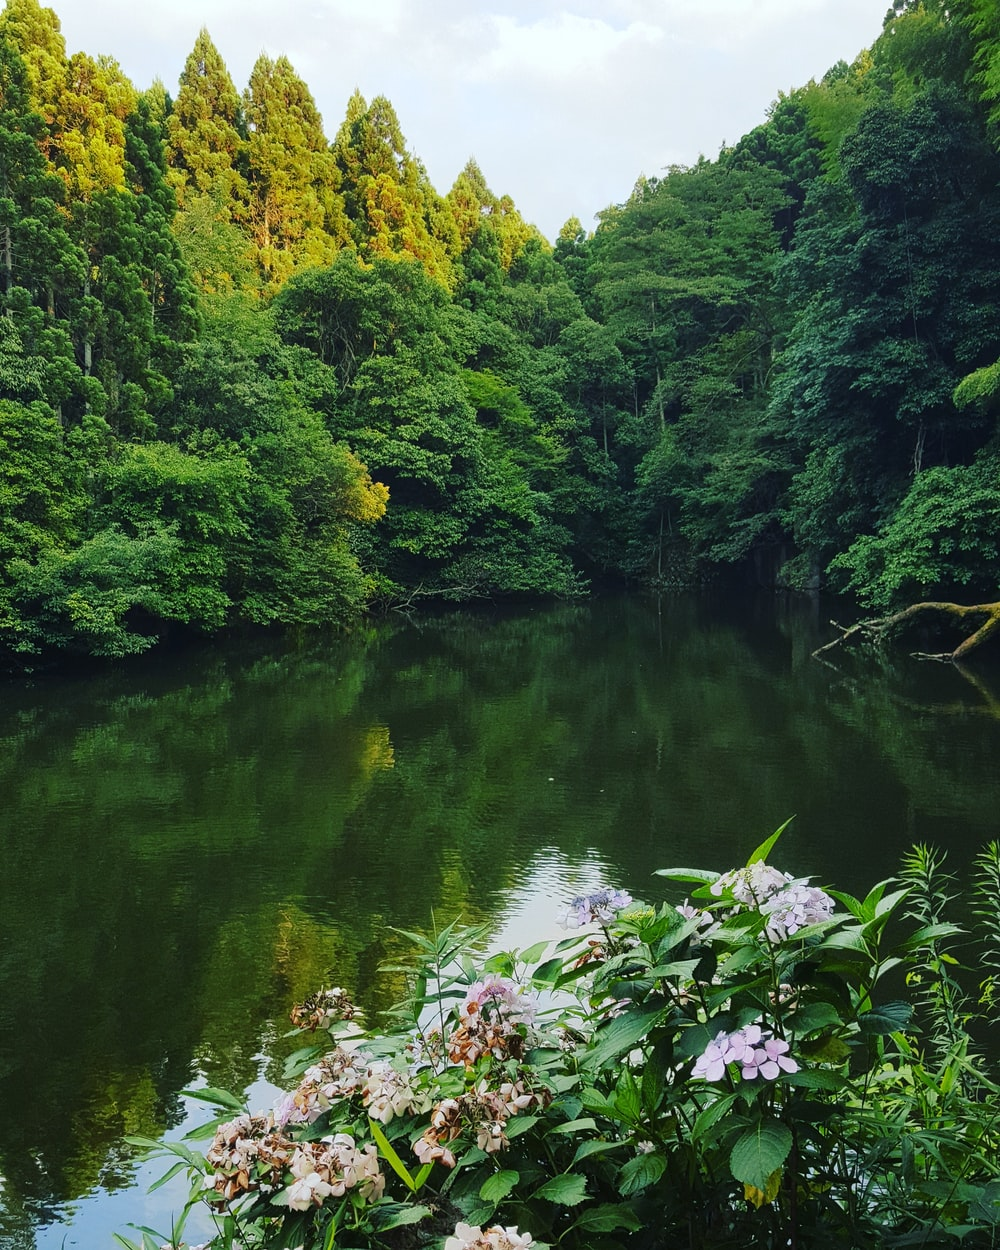 green trees beside river during daytime